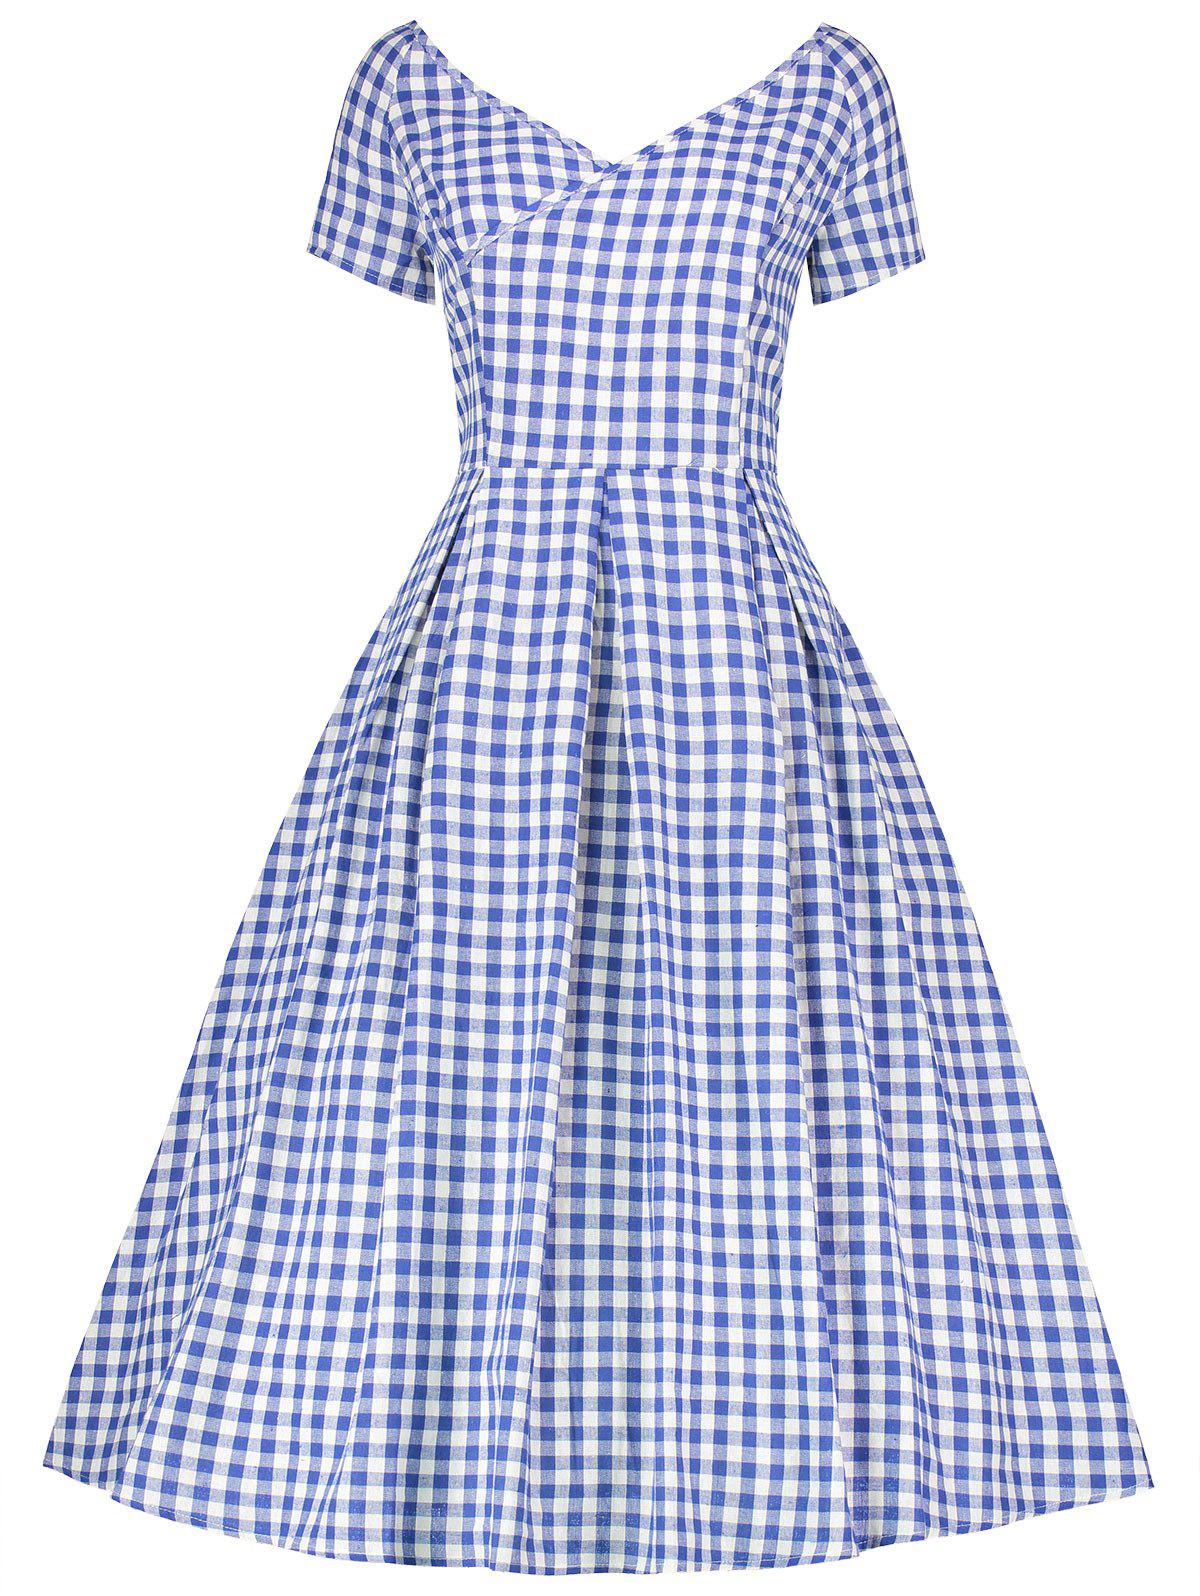 Vintage Plaid V Neck Plus Size DressWOMEN<br><br>Size: 4XL; Color: BLUE; Style: Vintage; Material: Cotton,Polyester; Silhouette: A-Line; Dresses Length: Mid-Calf; Neckline: V-Neck; Sleeve Length: Short Sleeves; Pattern Type: Plaid; With Belt: No; Season: Fall,Spring,Summer; Weight: 0.4050kg; Package Contents: 1 x Dress;